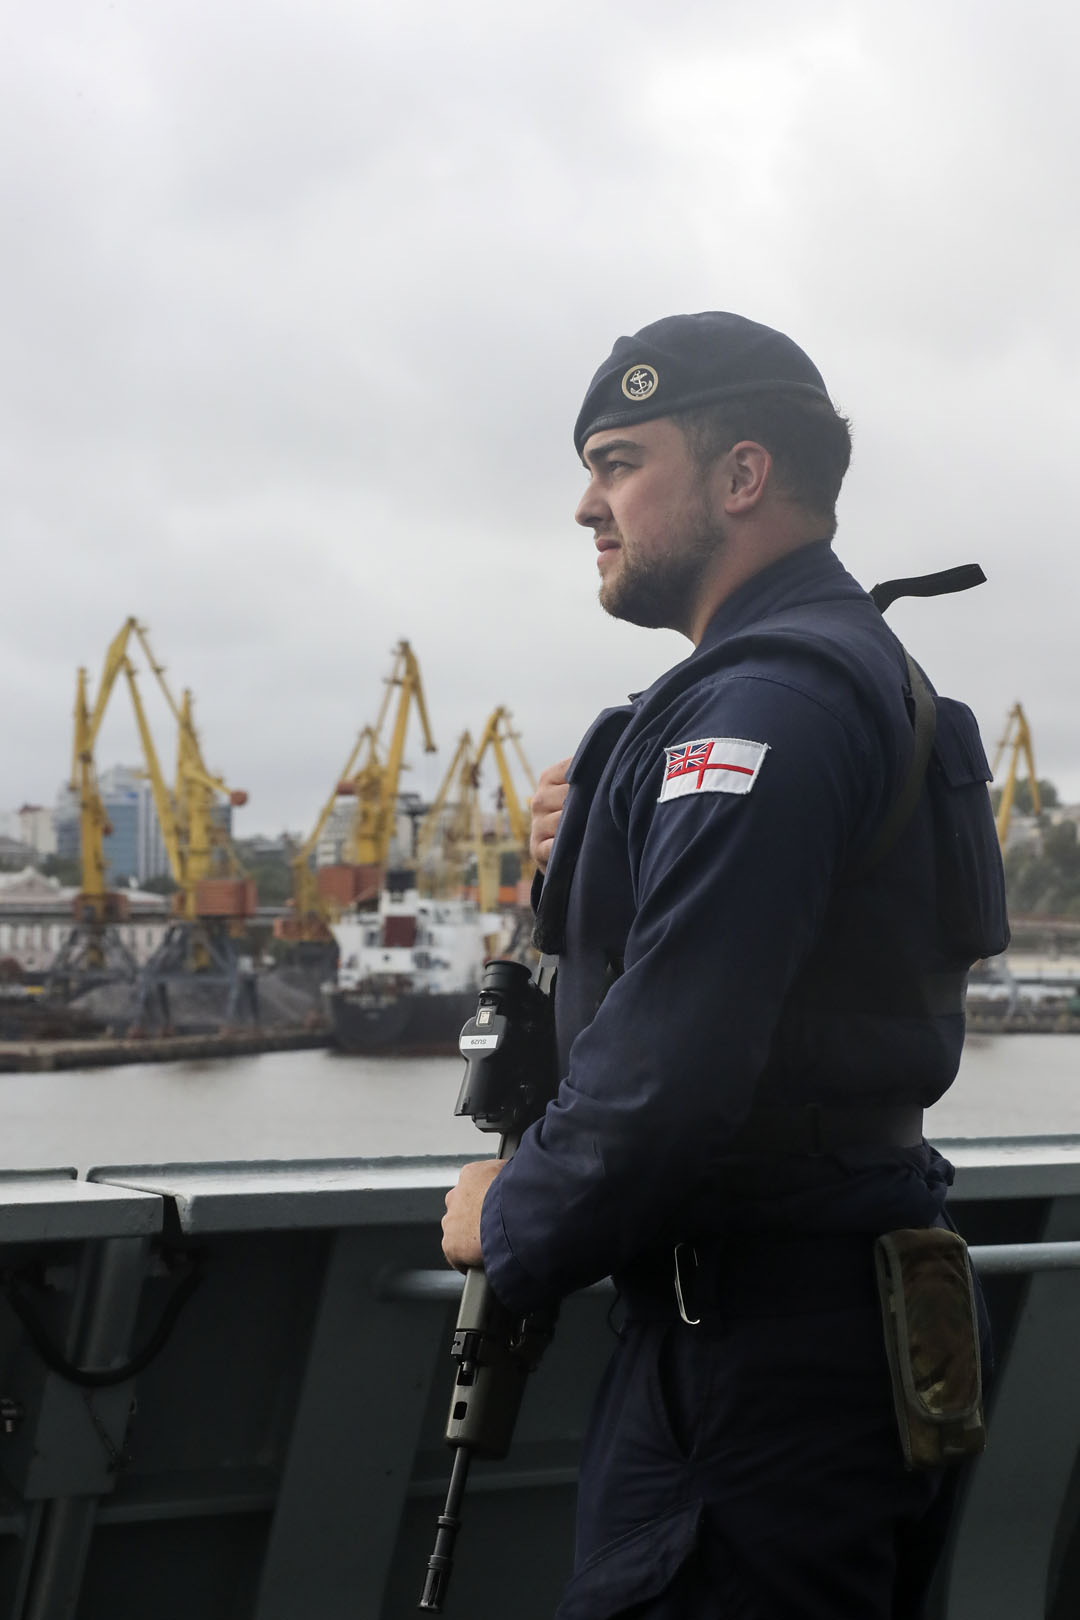 HMS Dragon forges ties with Ukraine in Odessa